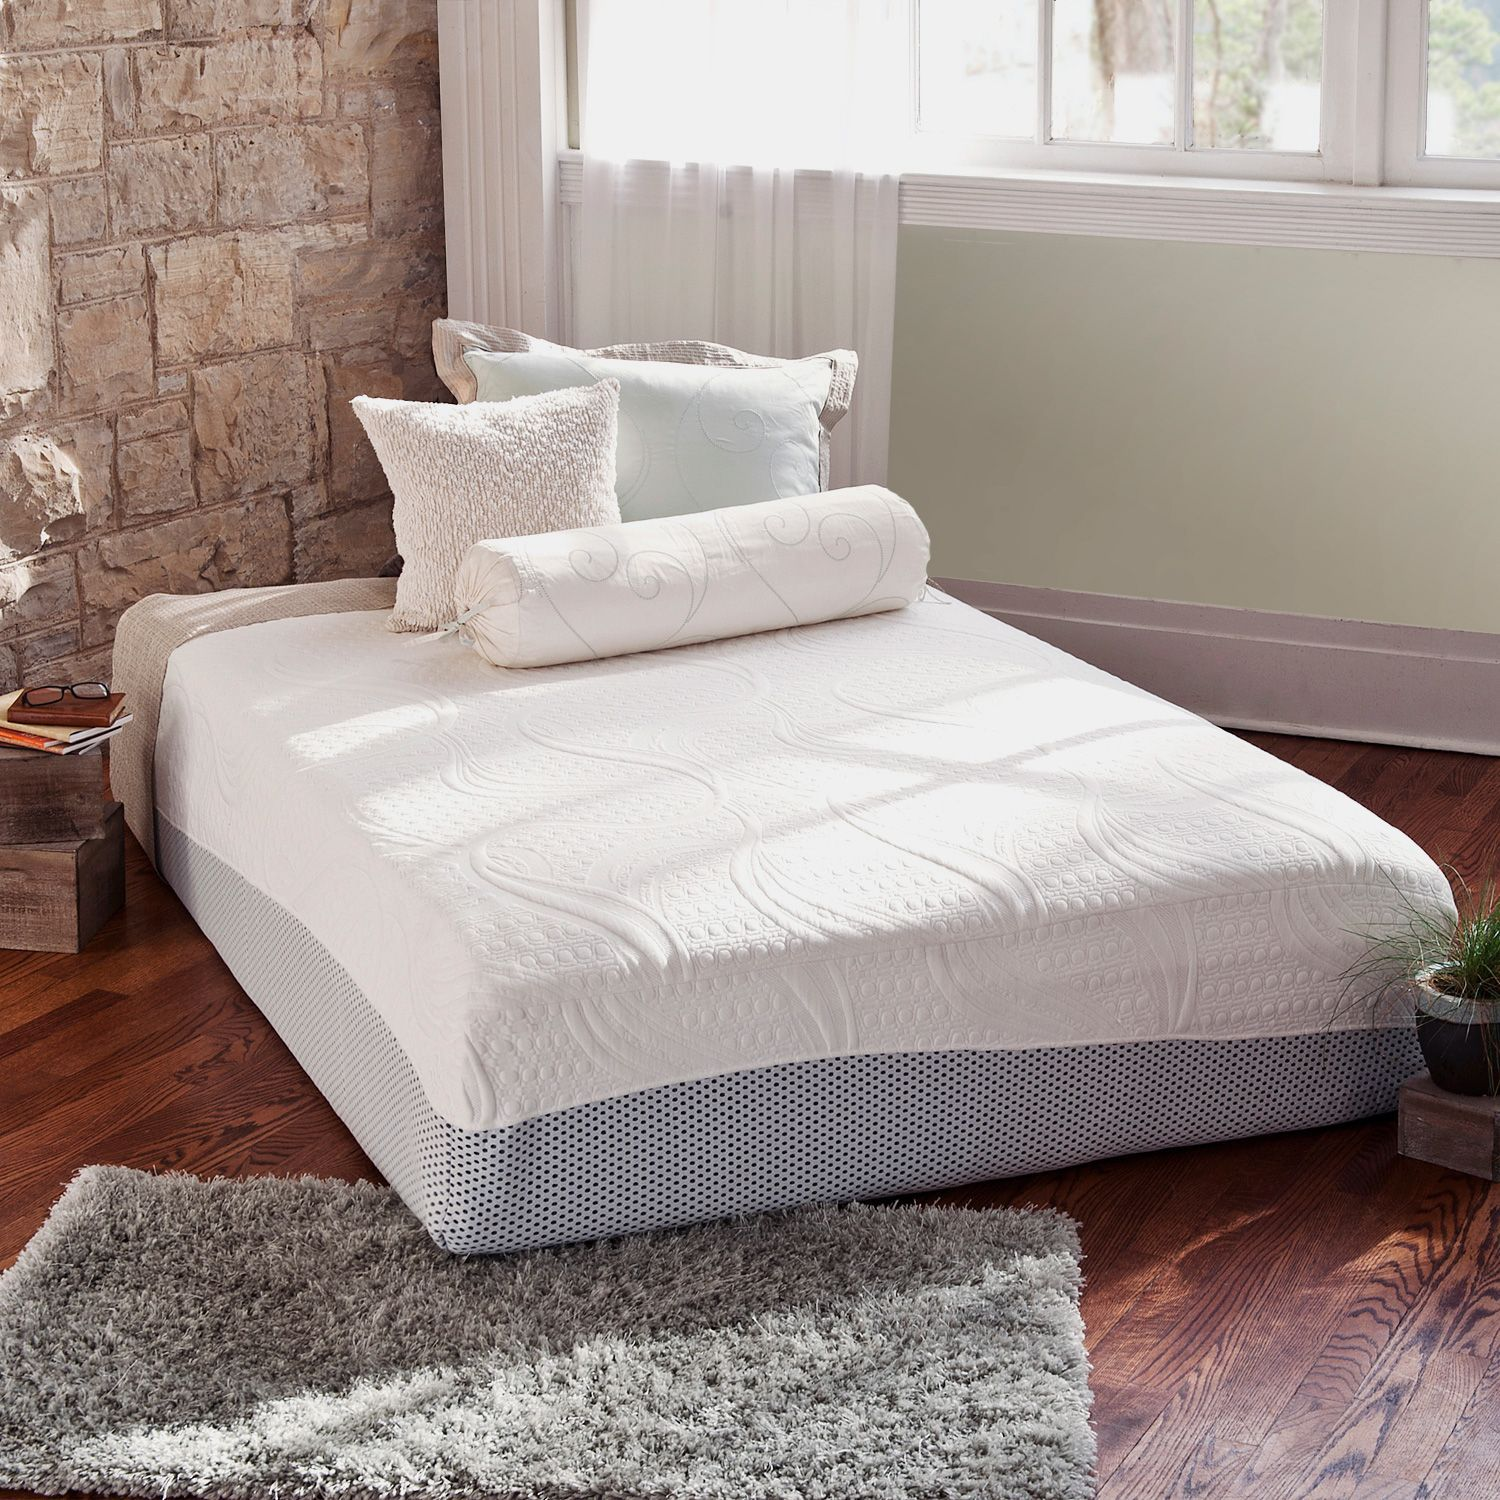 night therapy 12 pressure relief memory foam full mattress memory